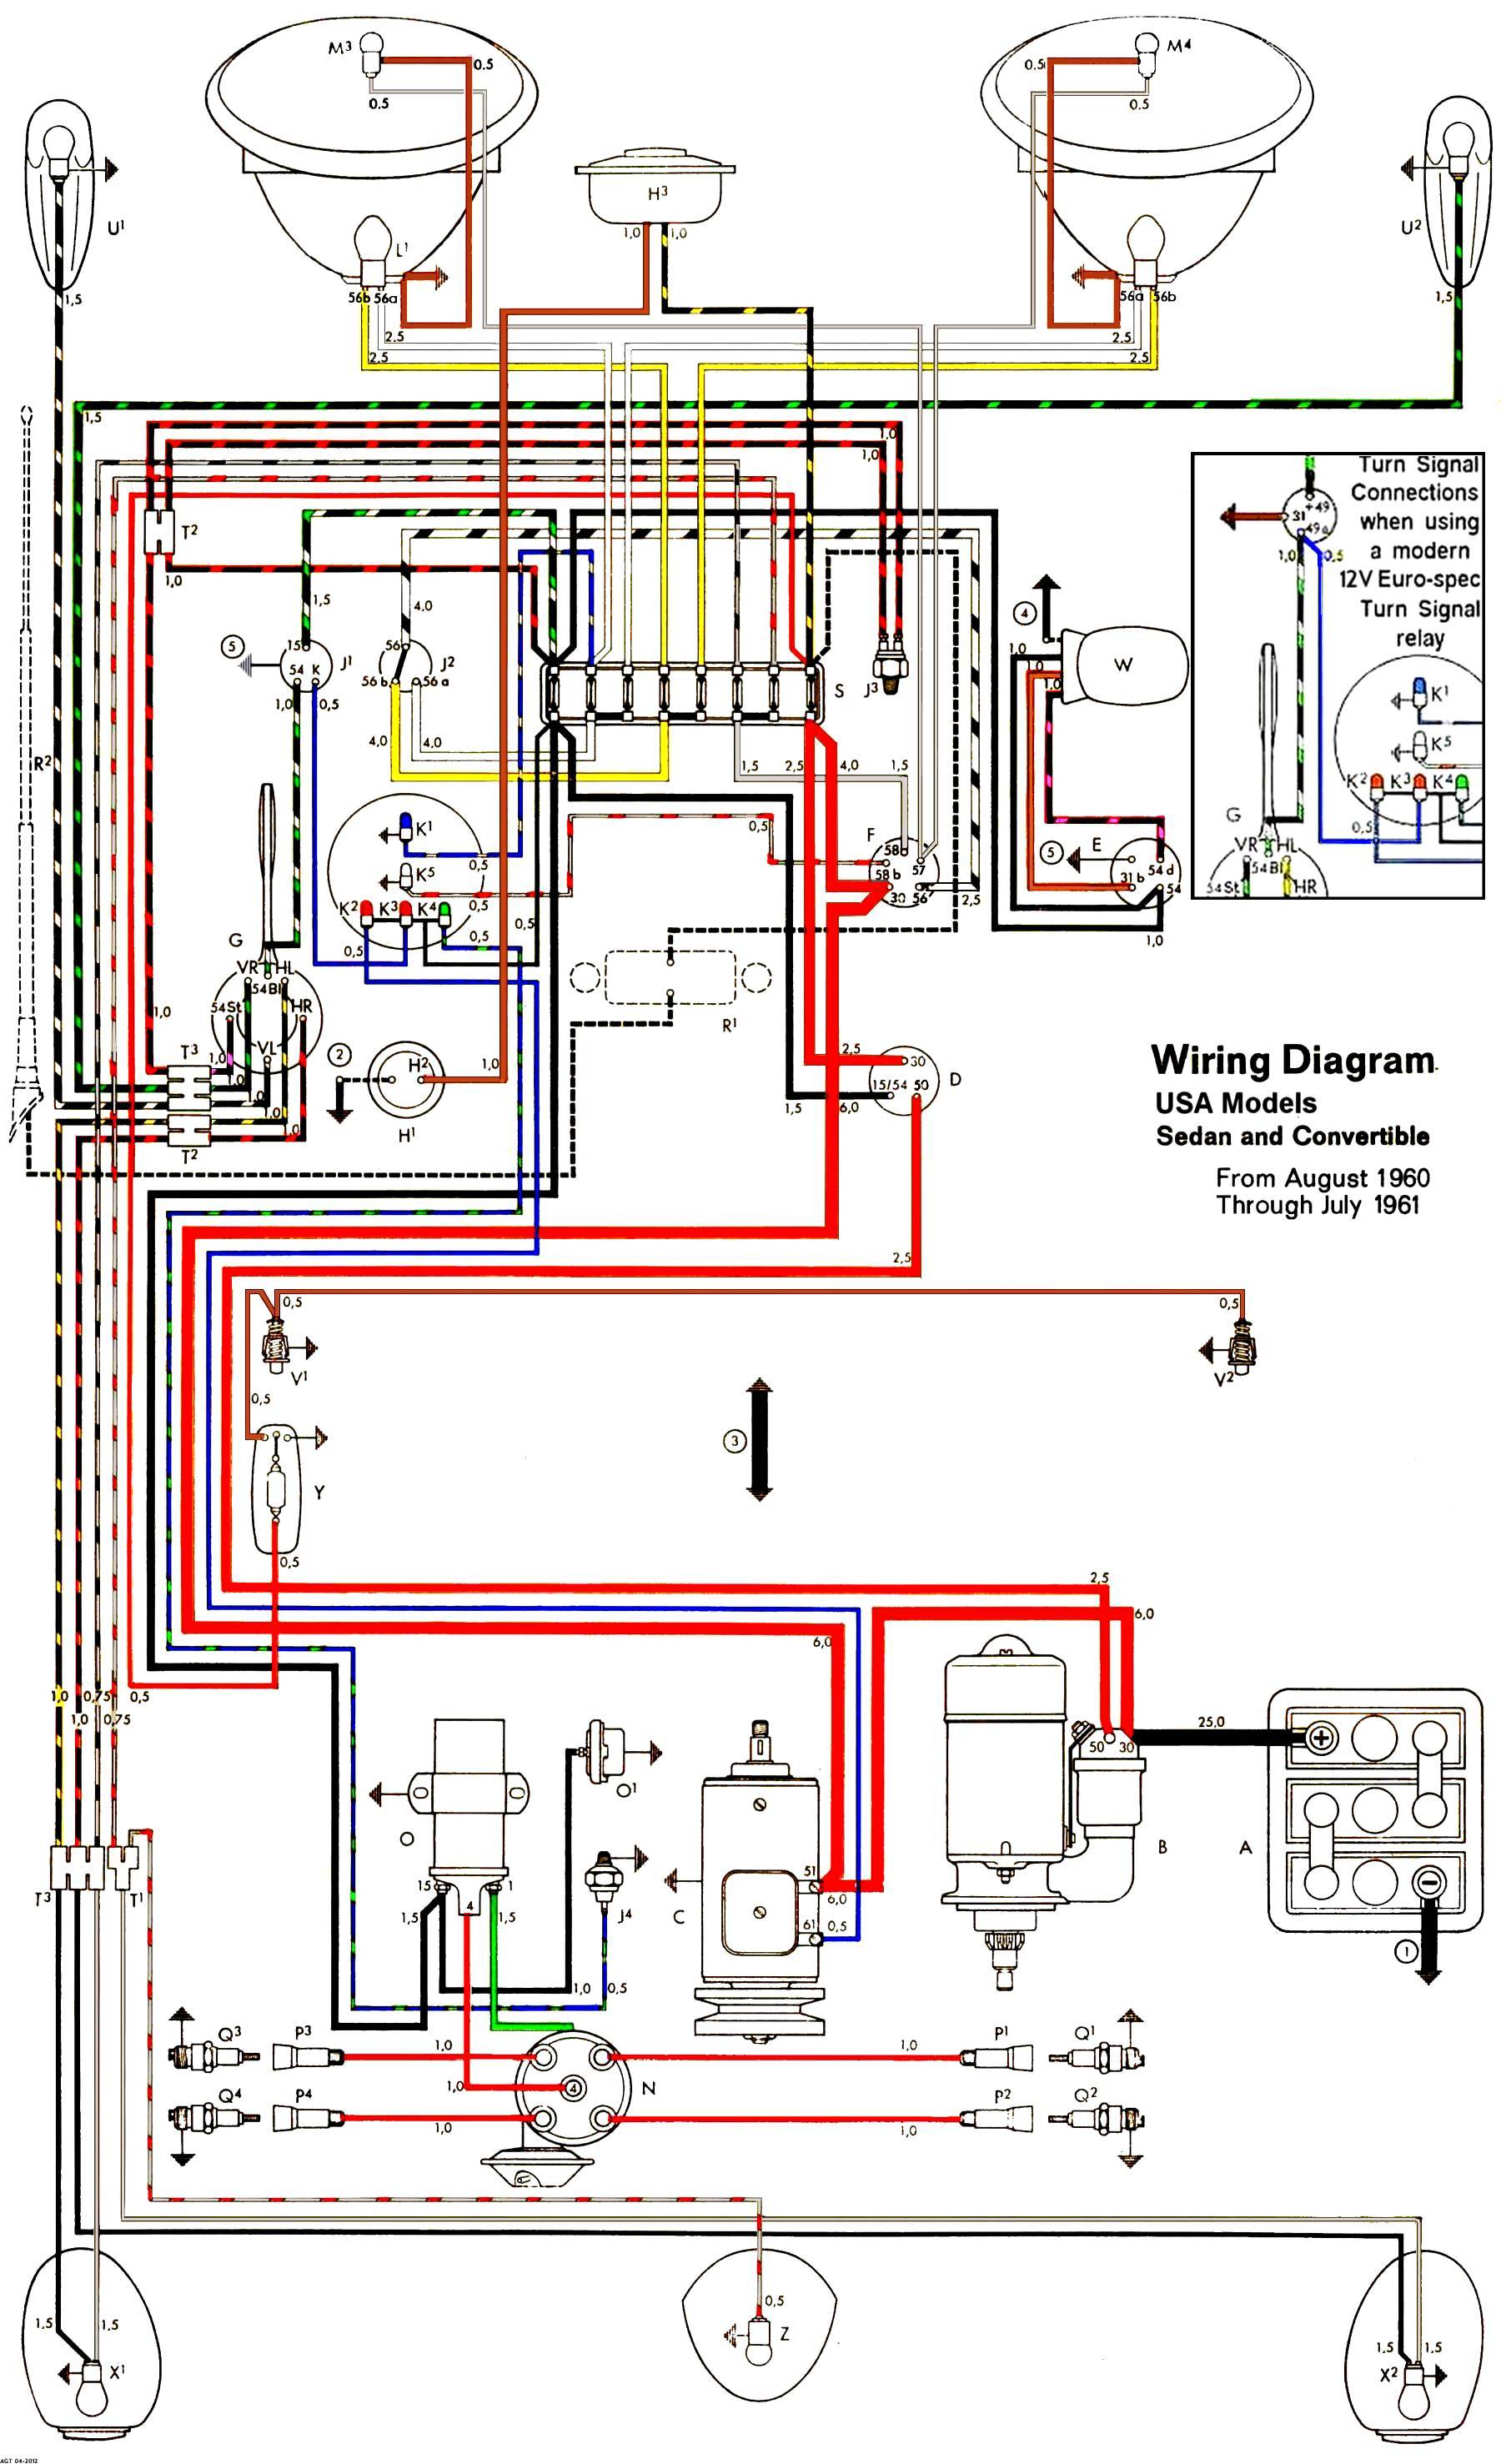 2000 vw beetle headlight wiring diagram suburban rv furnace thermostat thesamba type 1 diagrams